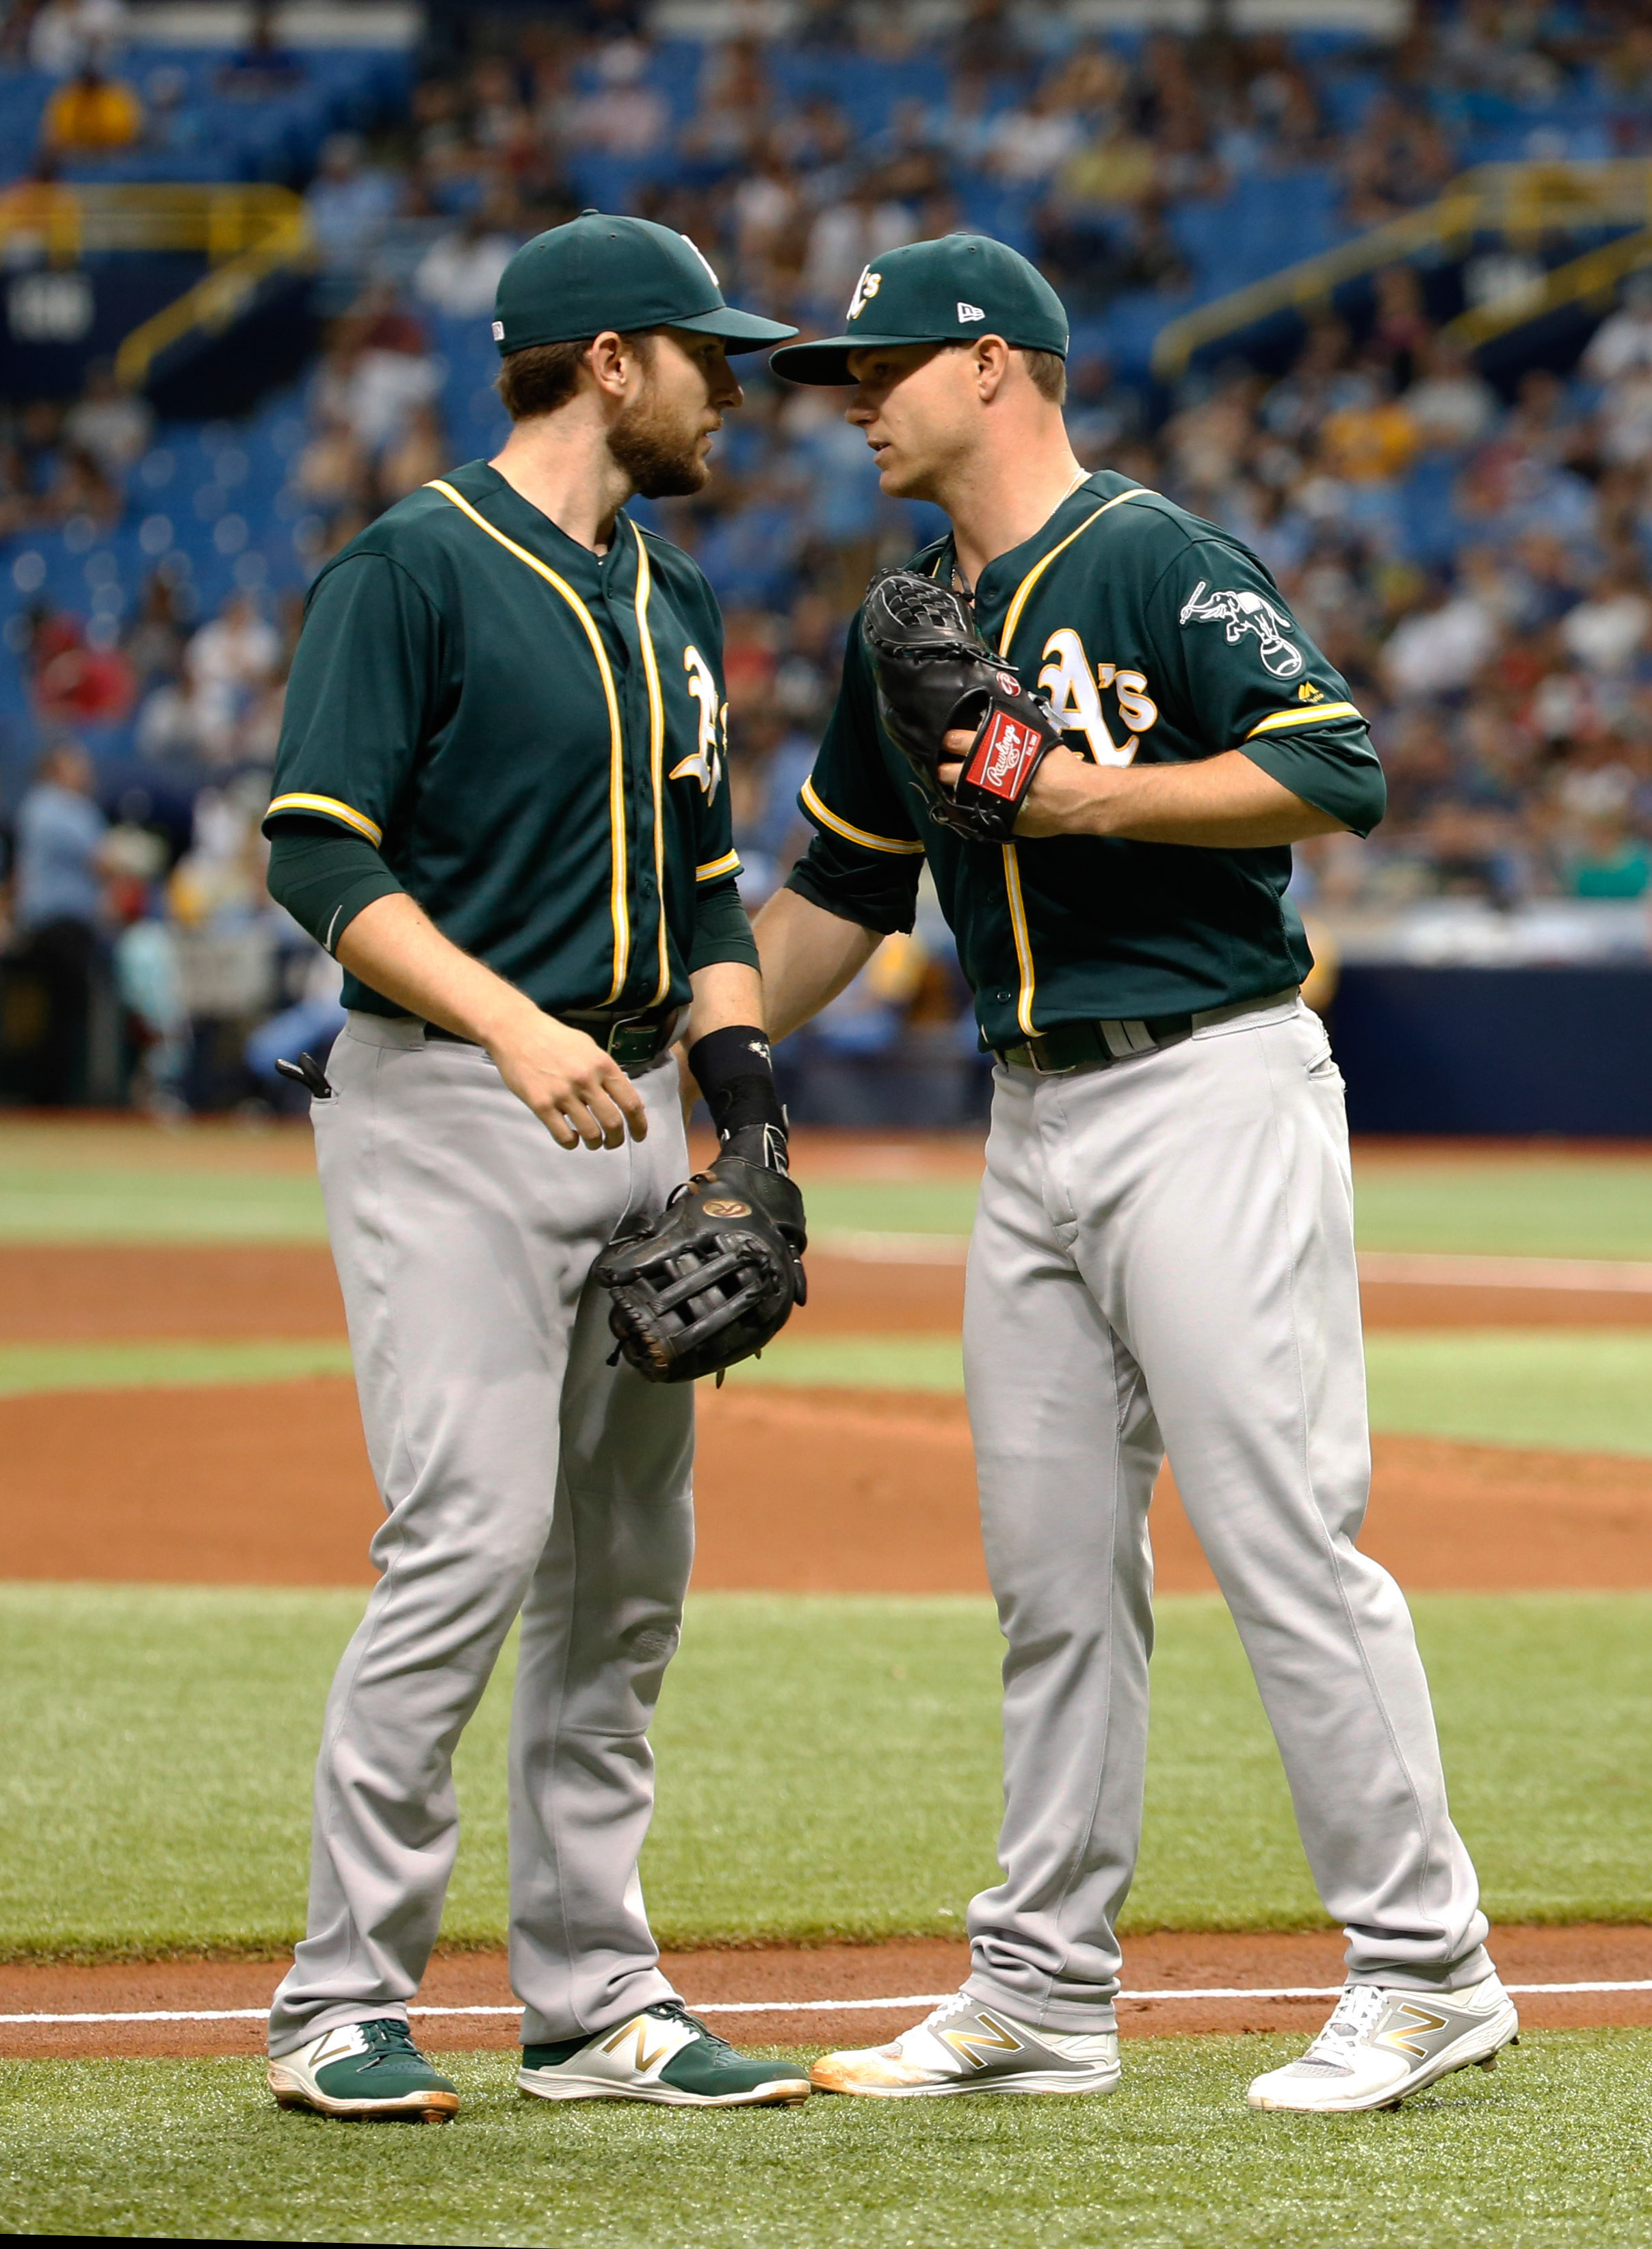 10116168-mlb-game-one-oakland-athletics-at-tampa-bay-rays